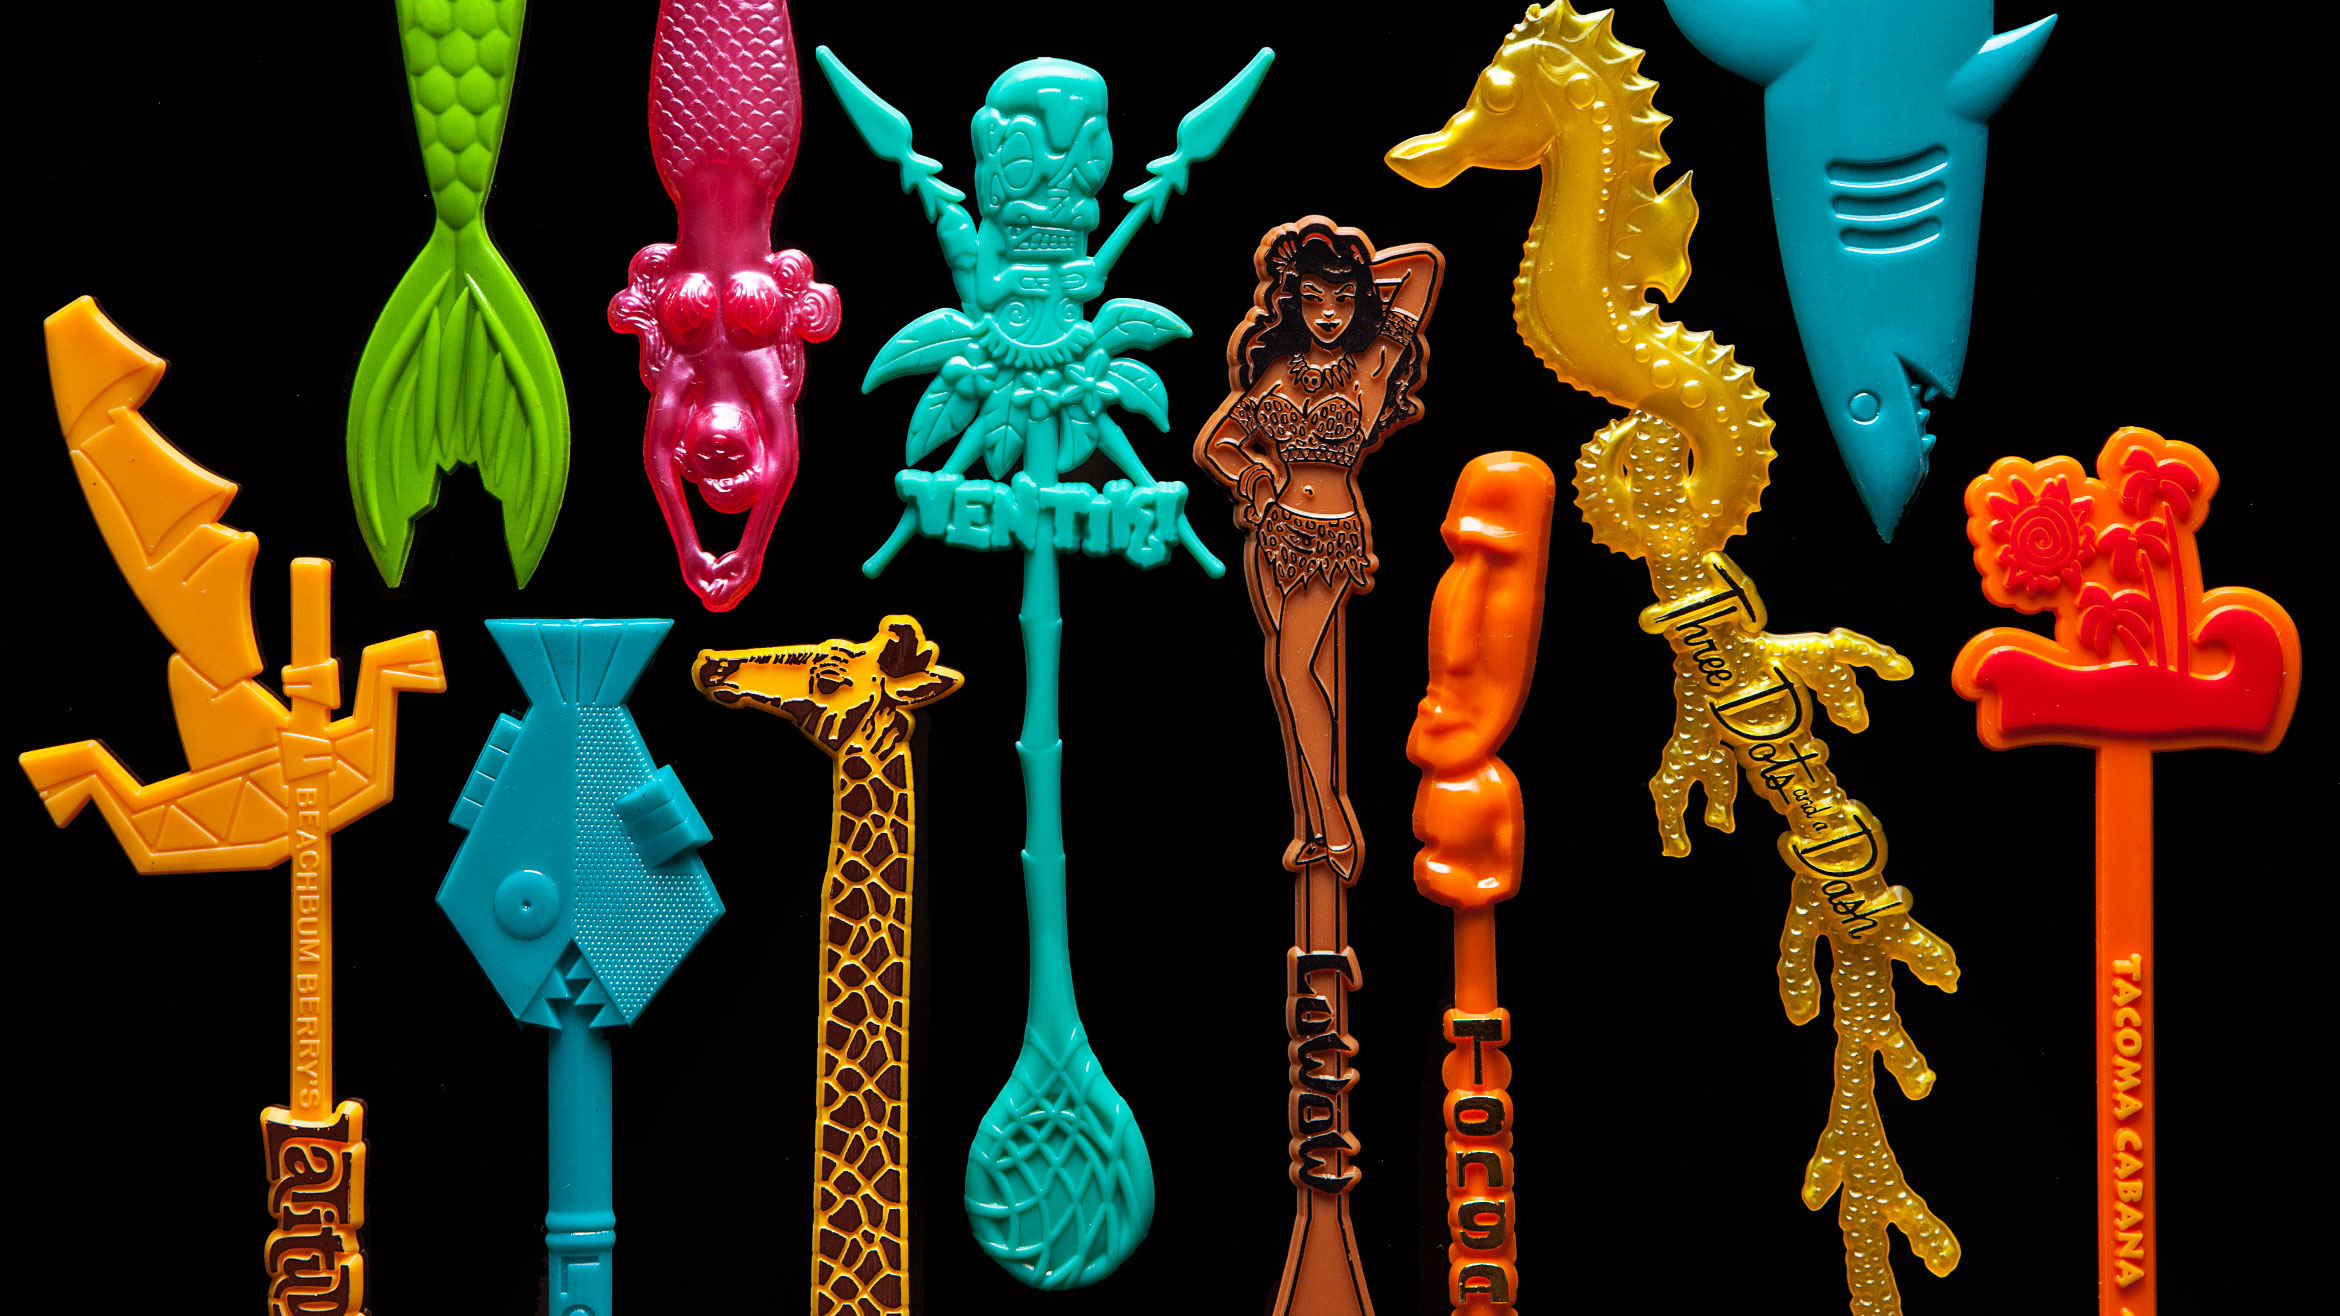 Royer Custom Swizzle Sticks Are Featured In PUNCH Magazine!